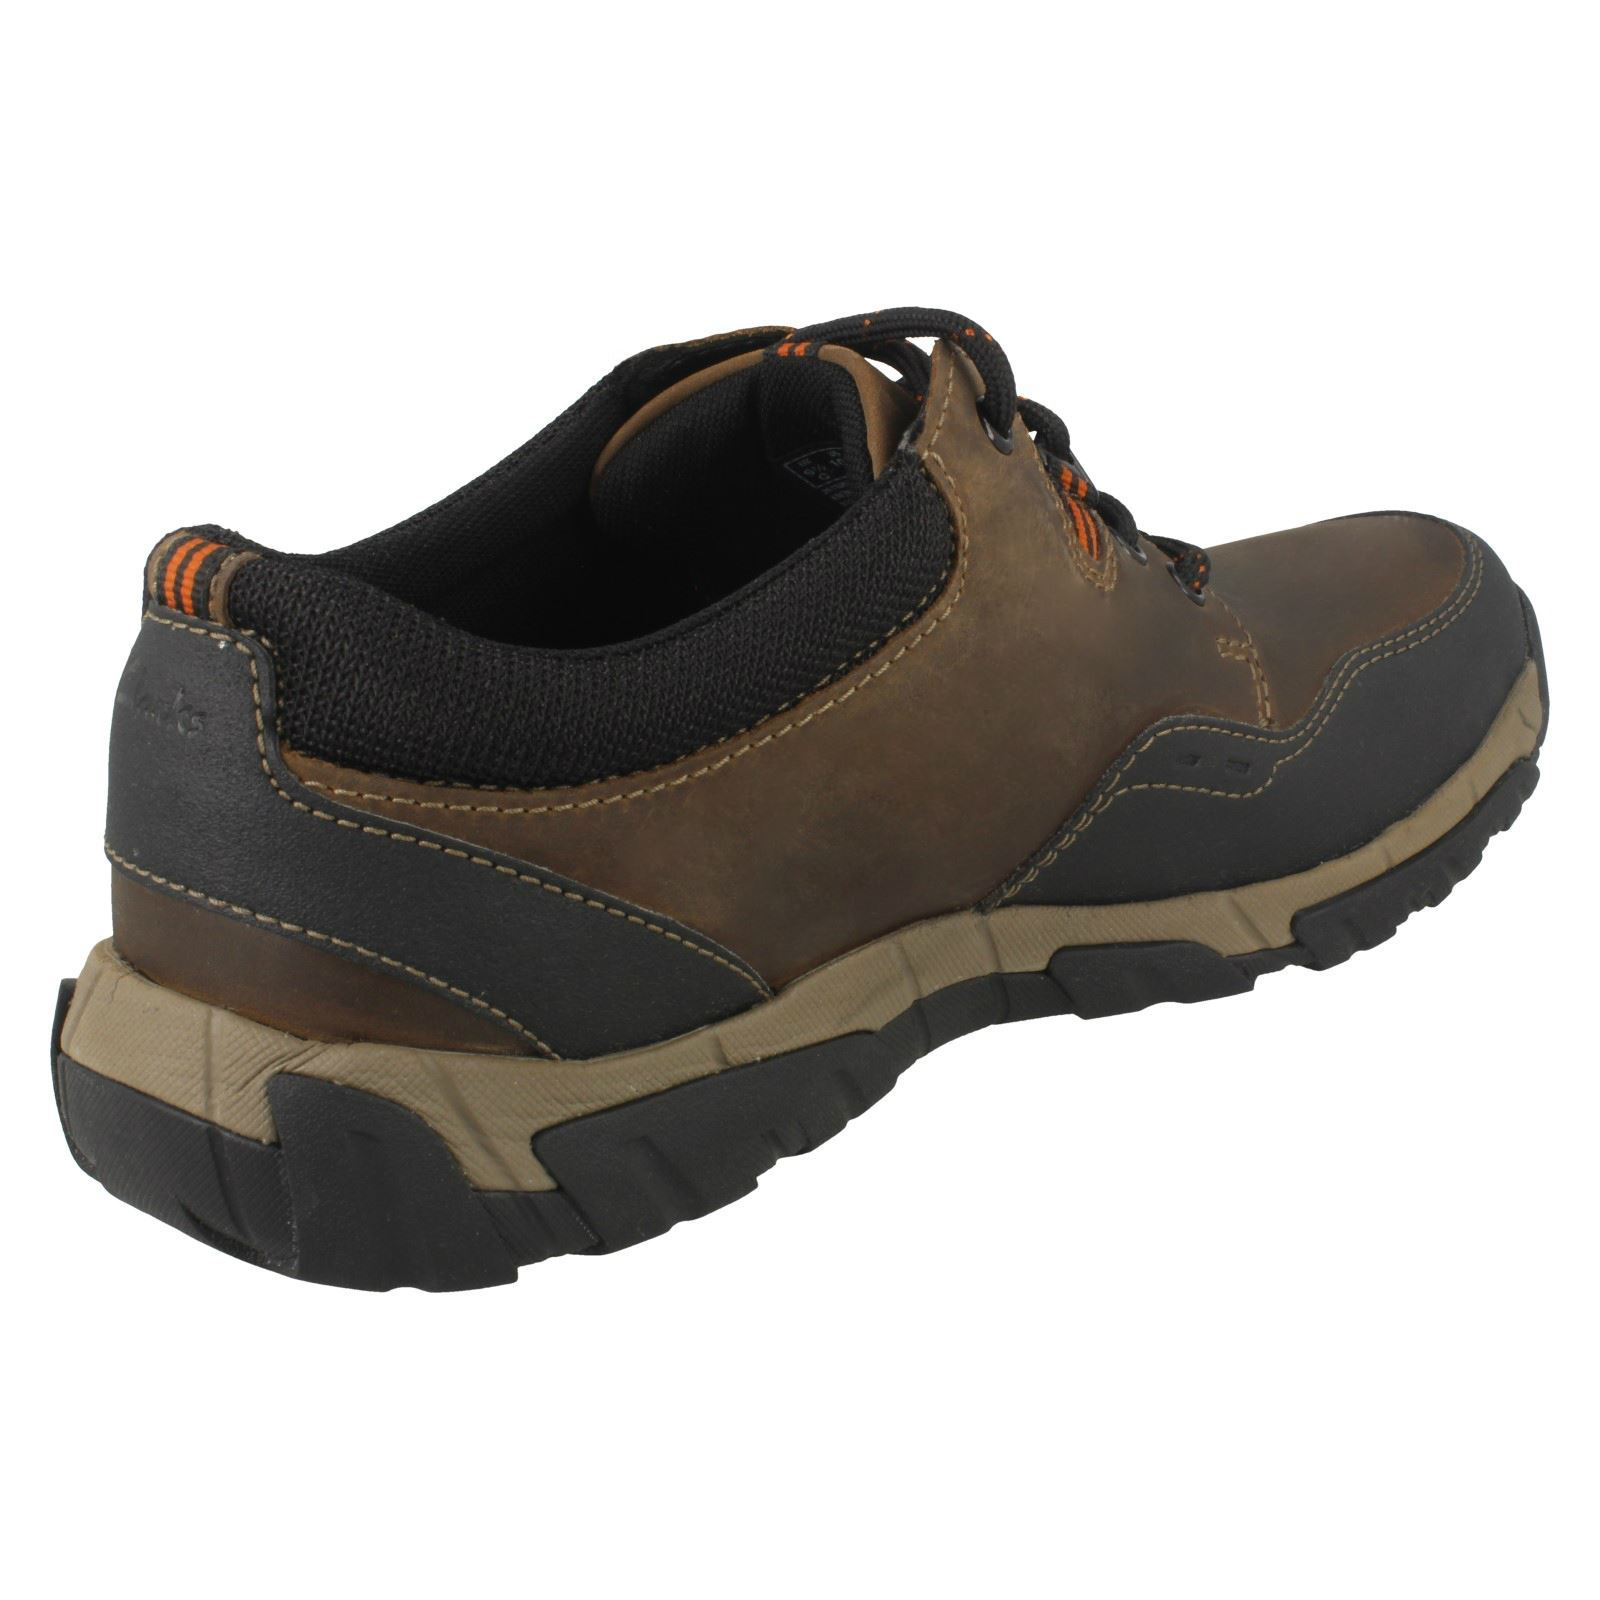 Mens Clarks Casual Shoes /'Walbeck Edge II/'